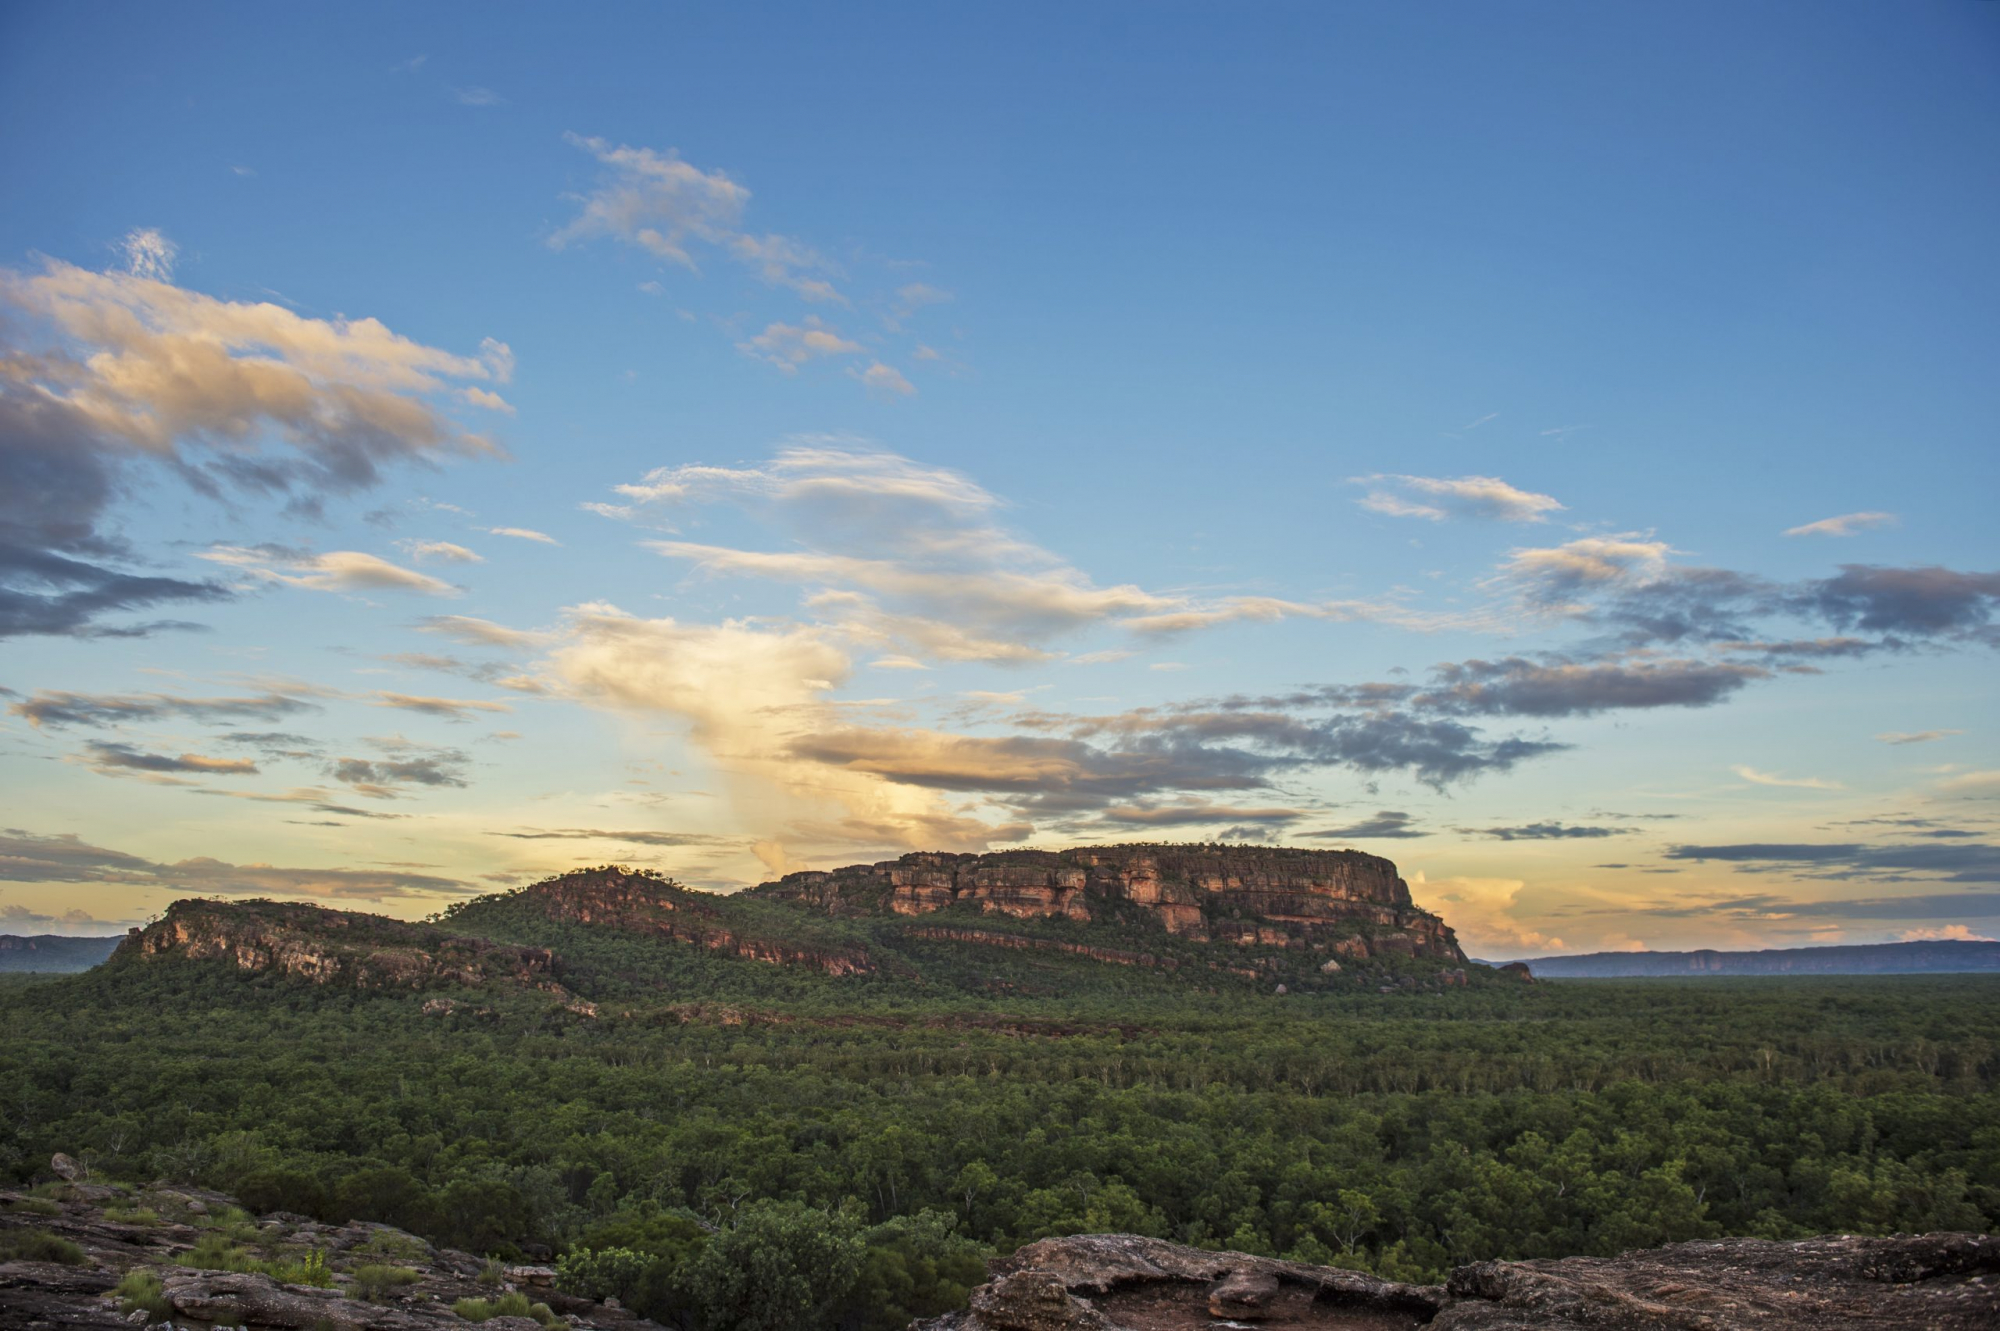 Kakadu, Arnhem Land & Gunlom Falls Adventure | Nourlangie Rock, Kakadu National Park, Top End, Northern Territory